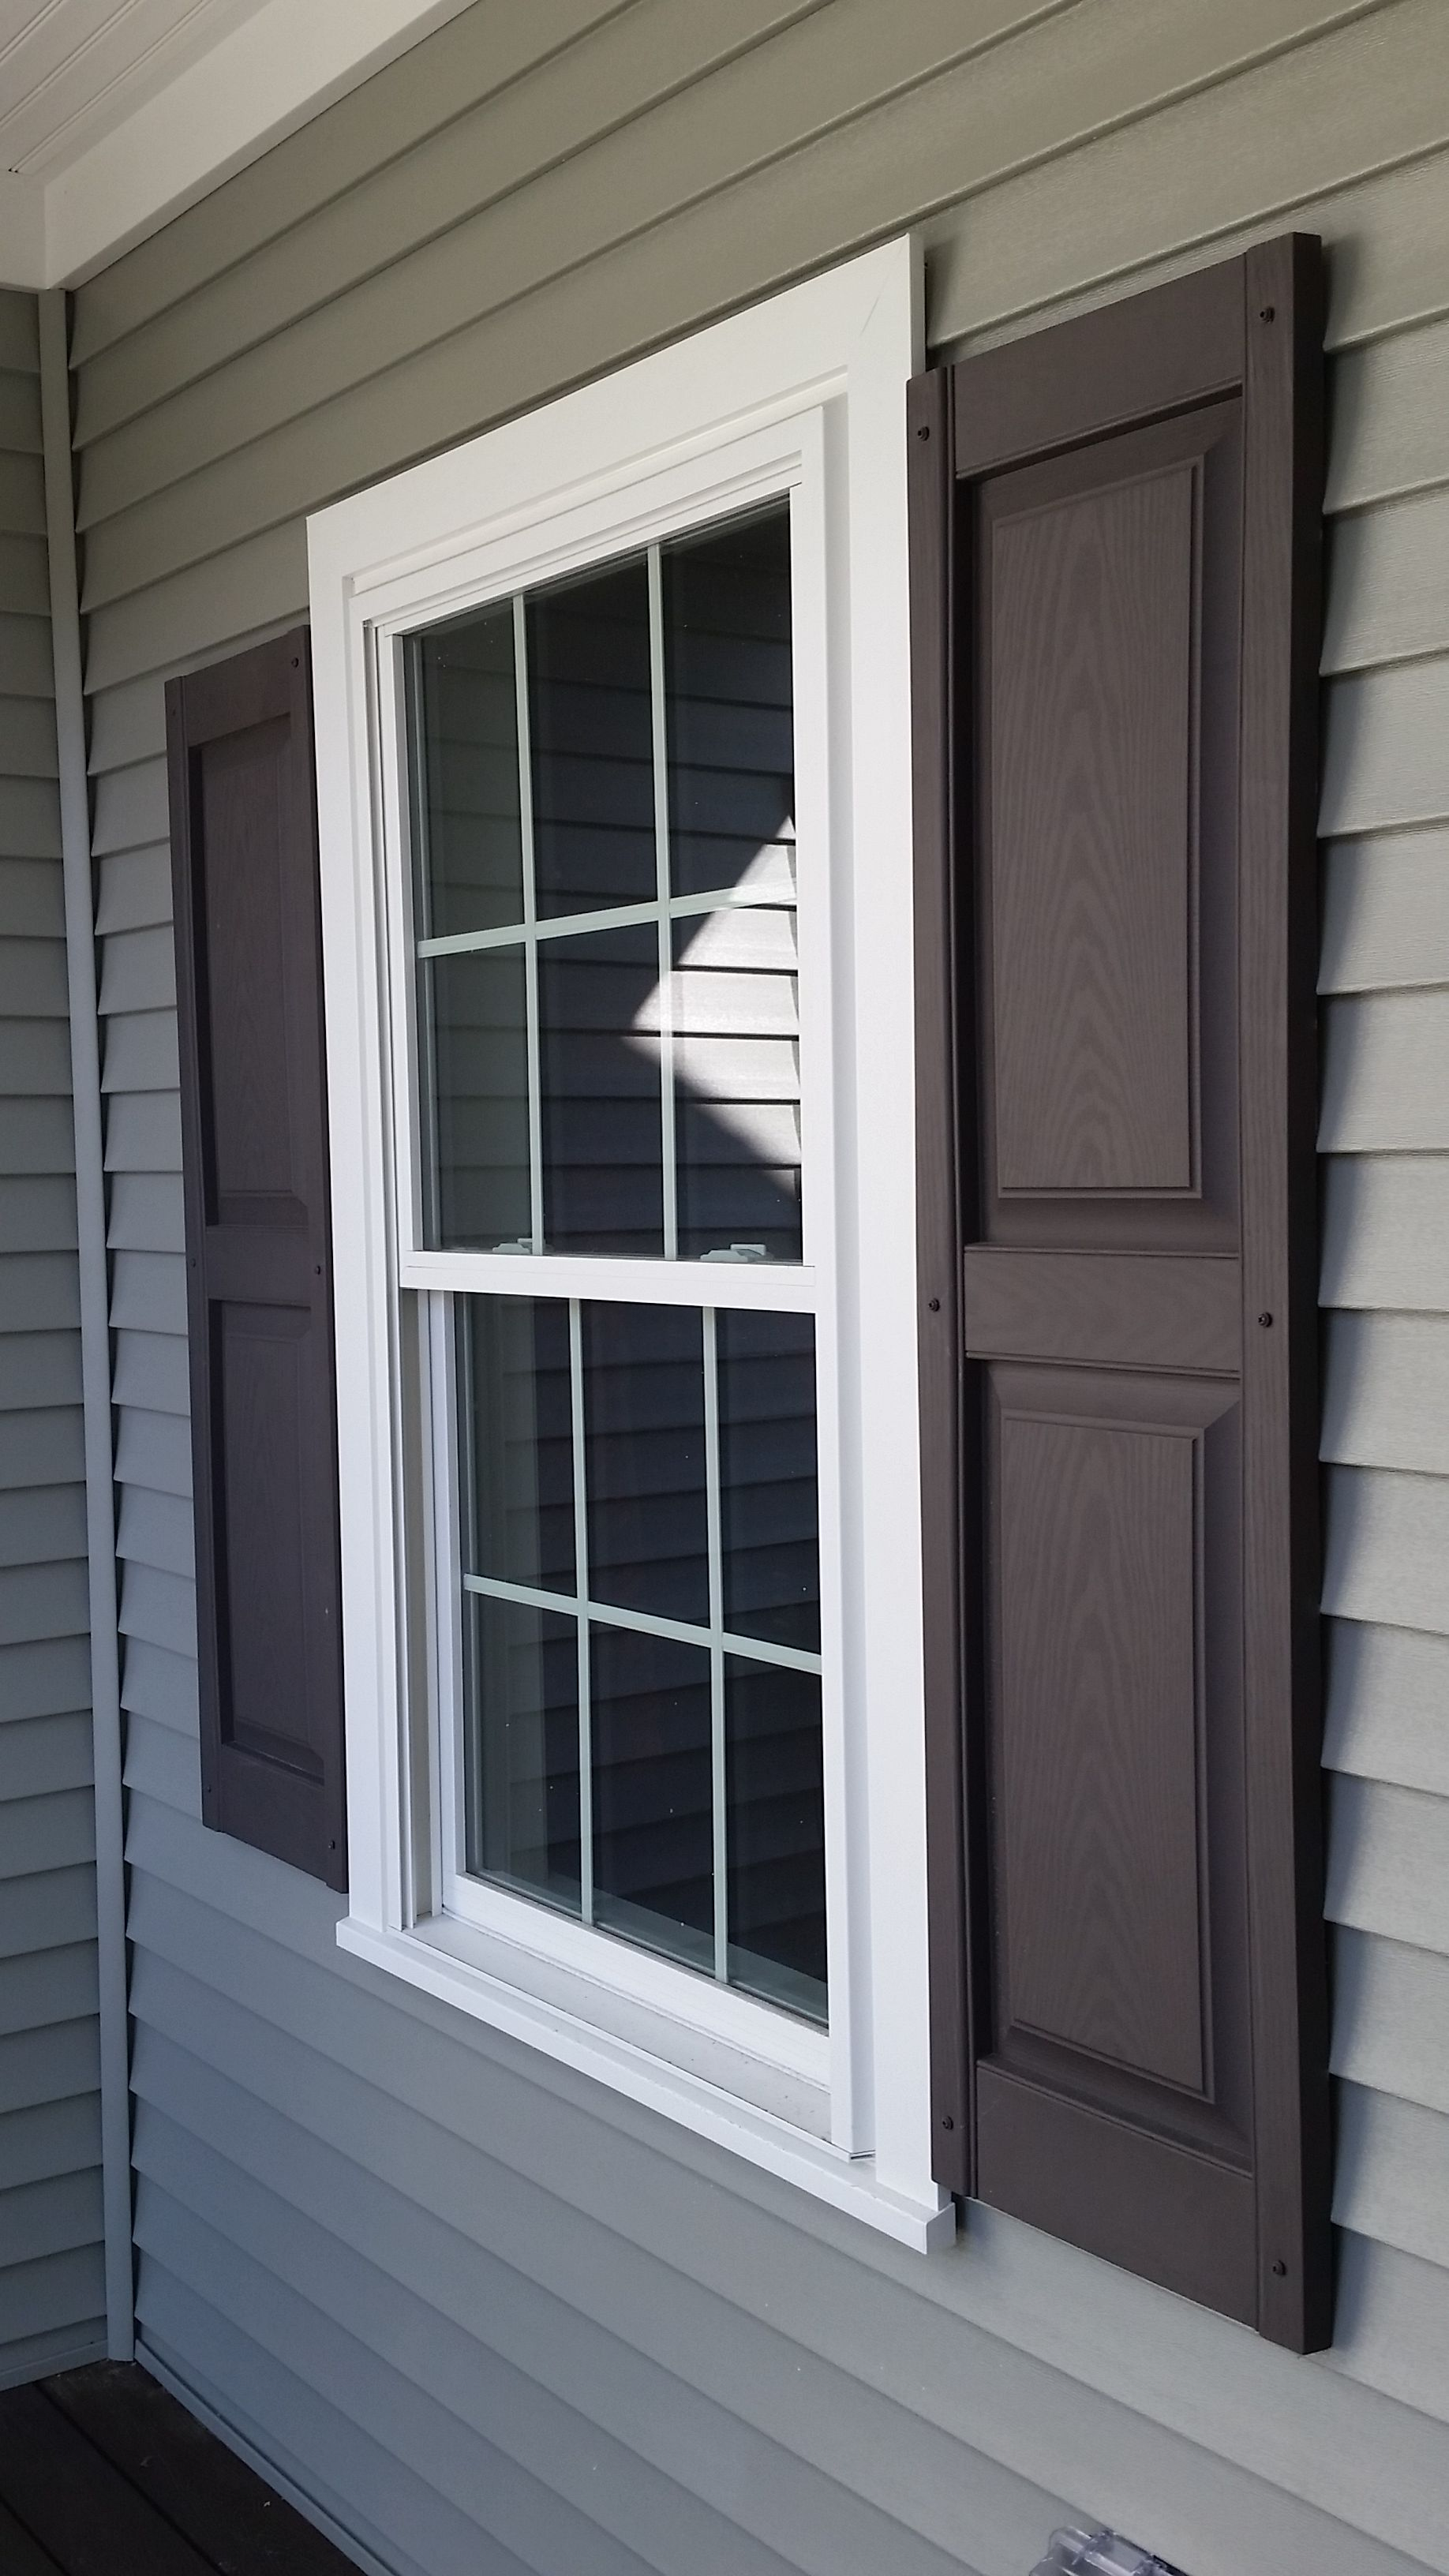 Fixed Vinyl Picture Replacement Window For New Construction Or Remodel